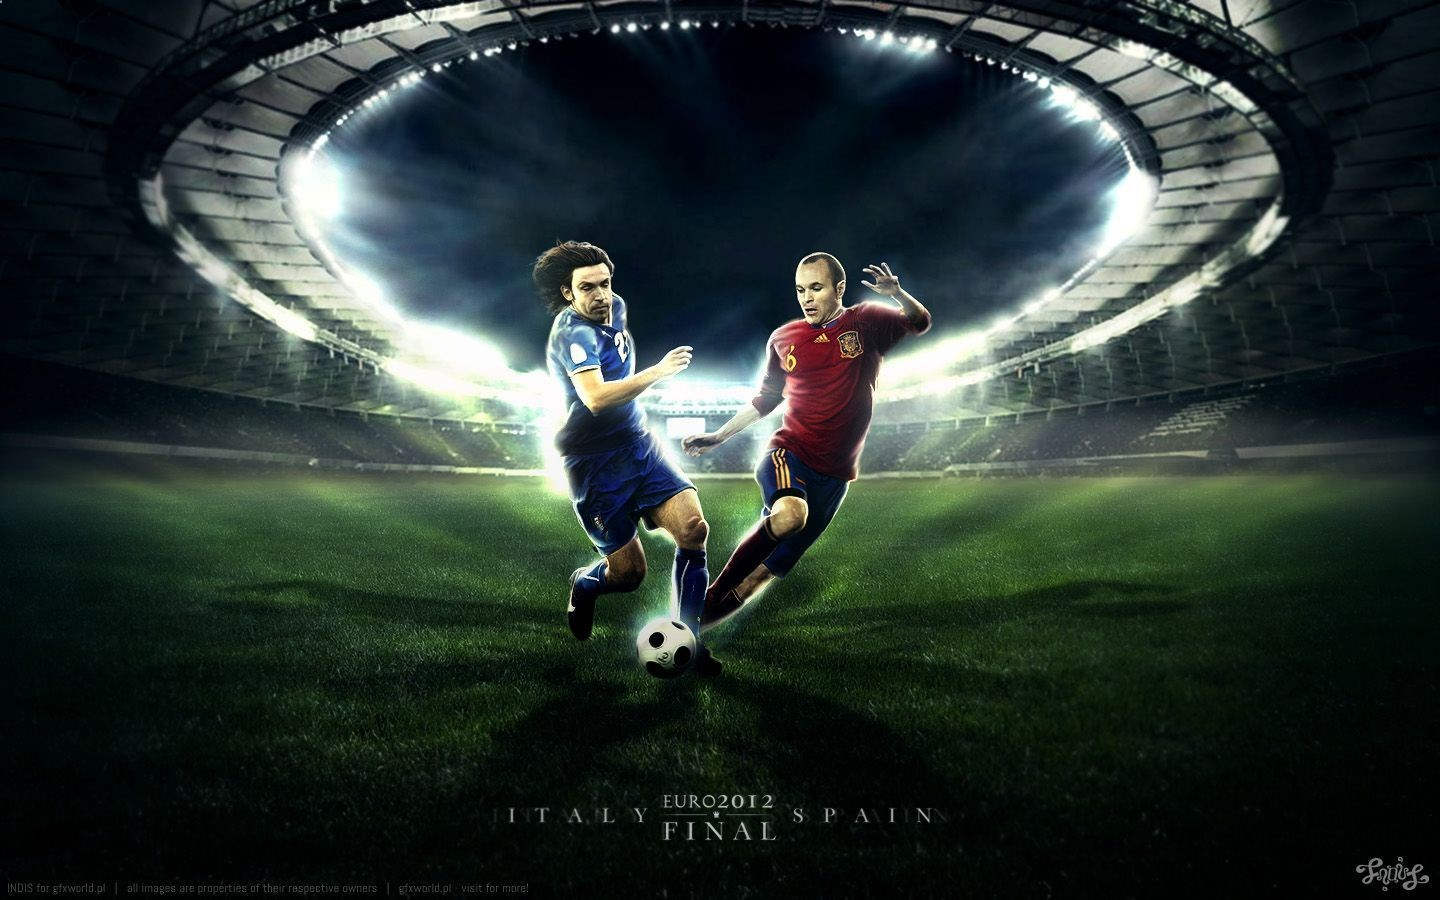 Celebrity-Hollywood-Soccer-Football-Desktops-1920%C3%971080-Football-Soccer-Wallpa-wallpaper-wpc90010306